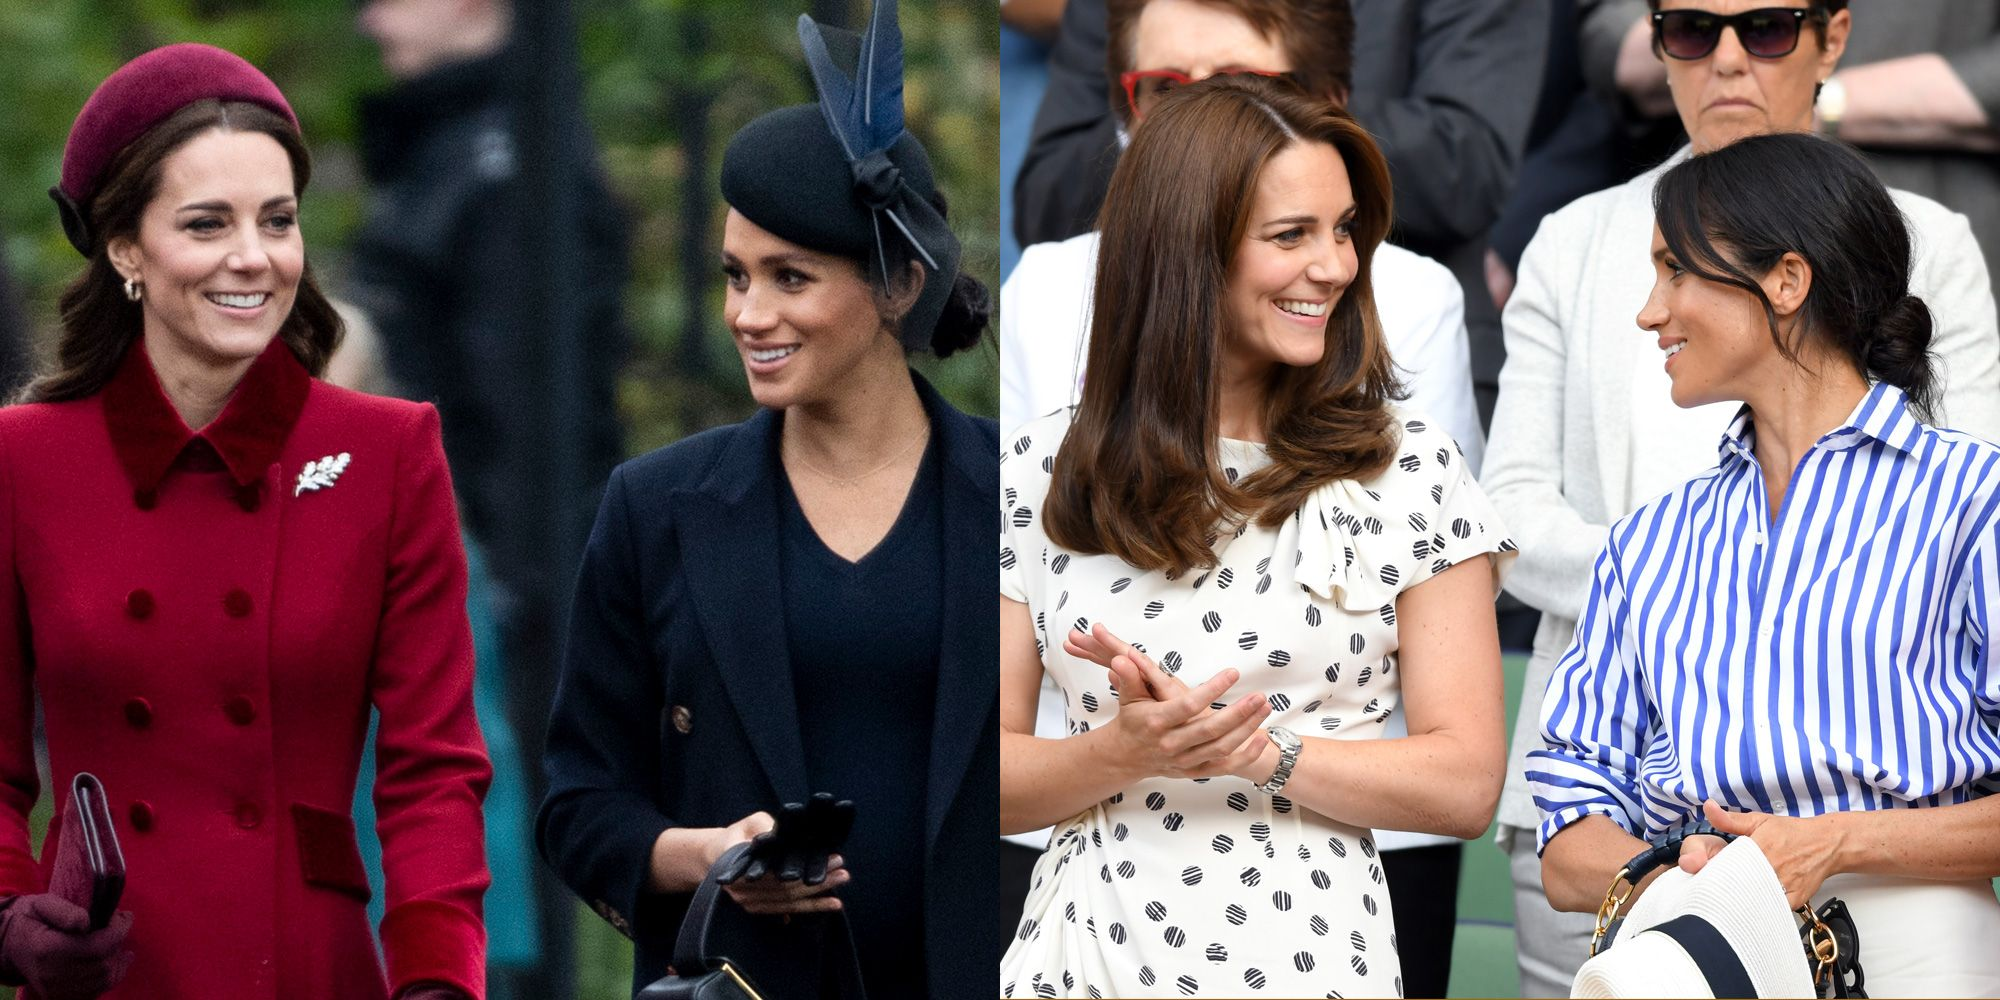 Every Photo of Kate Middleton and Meghan Markle That Disproves Those Feud Rumors